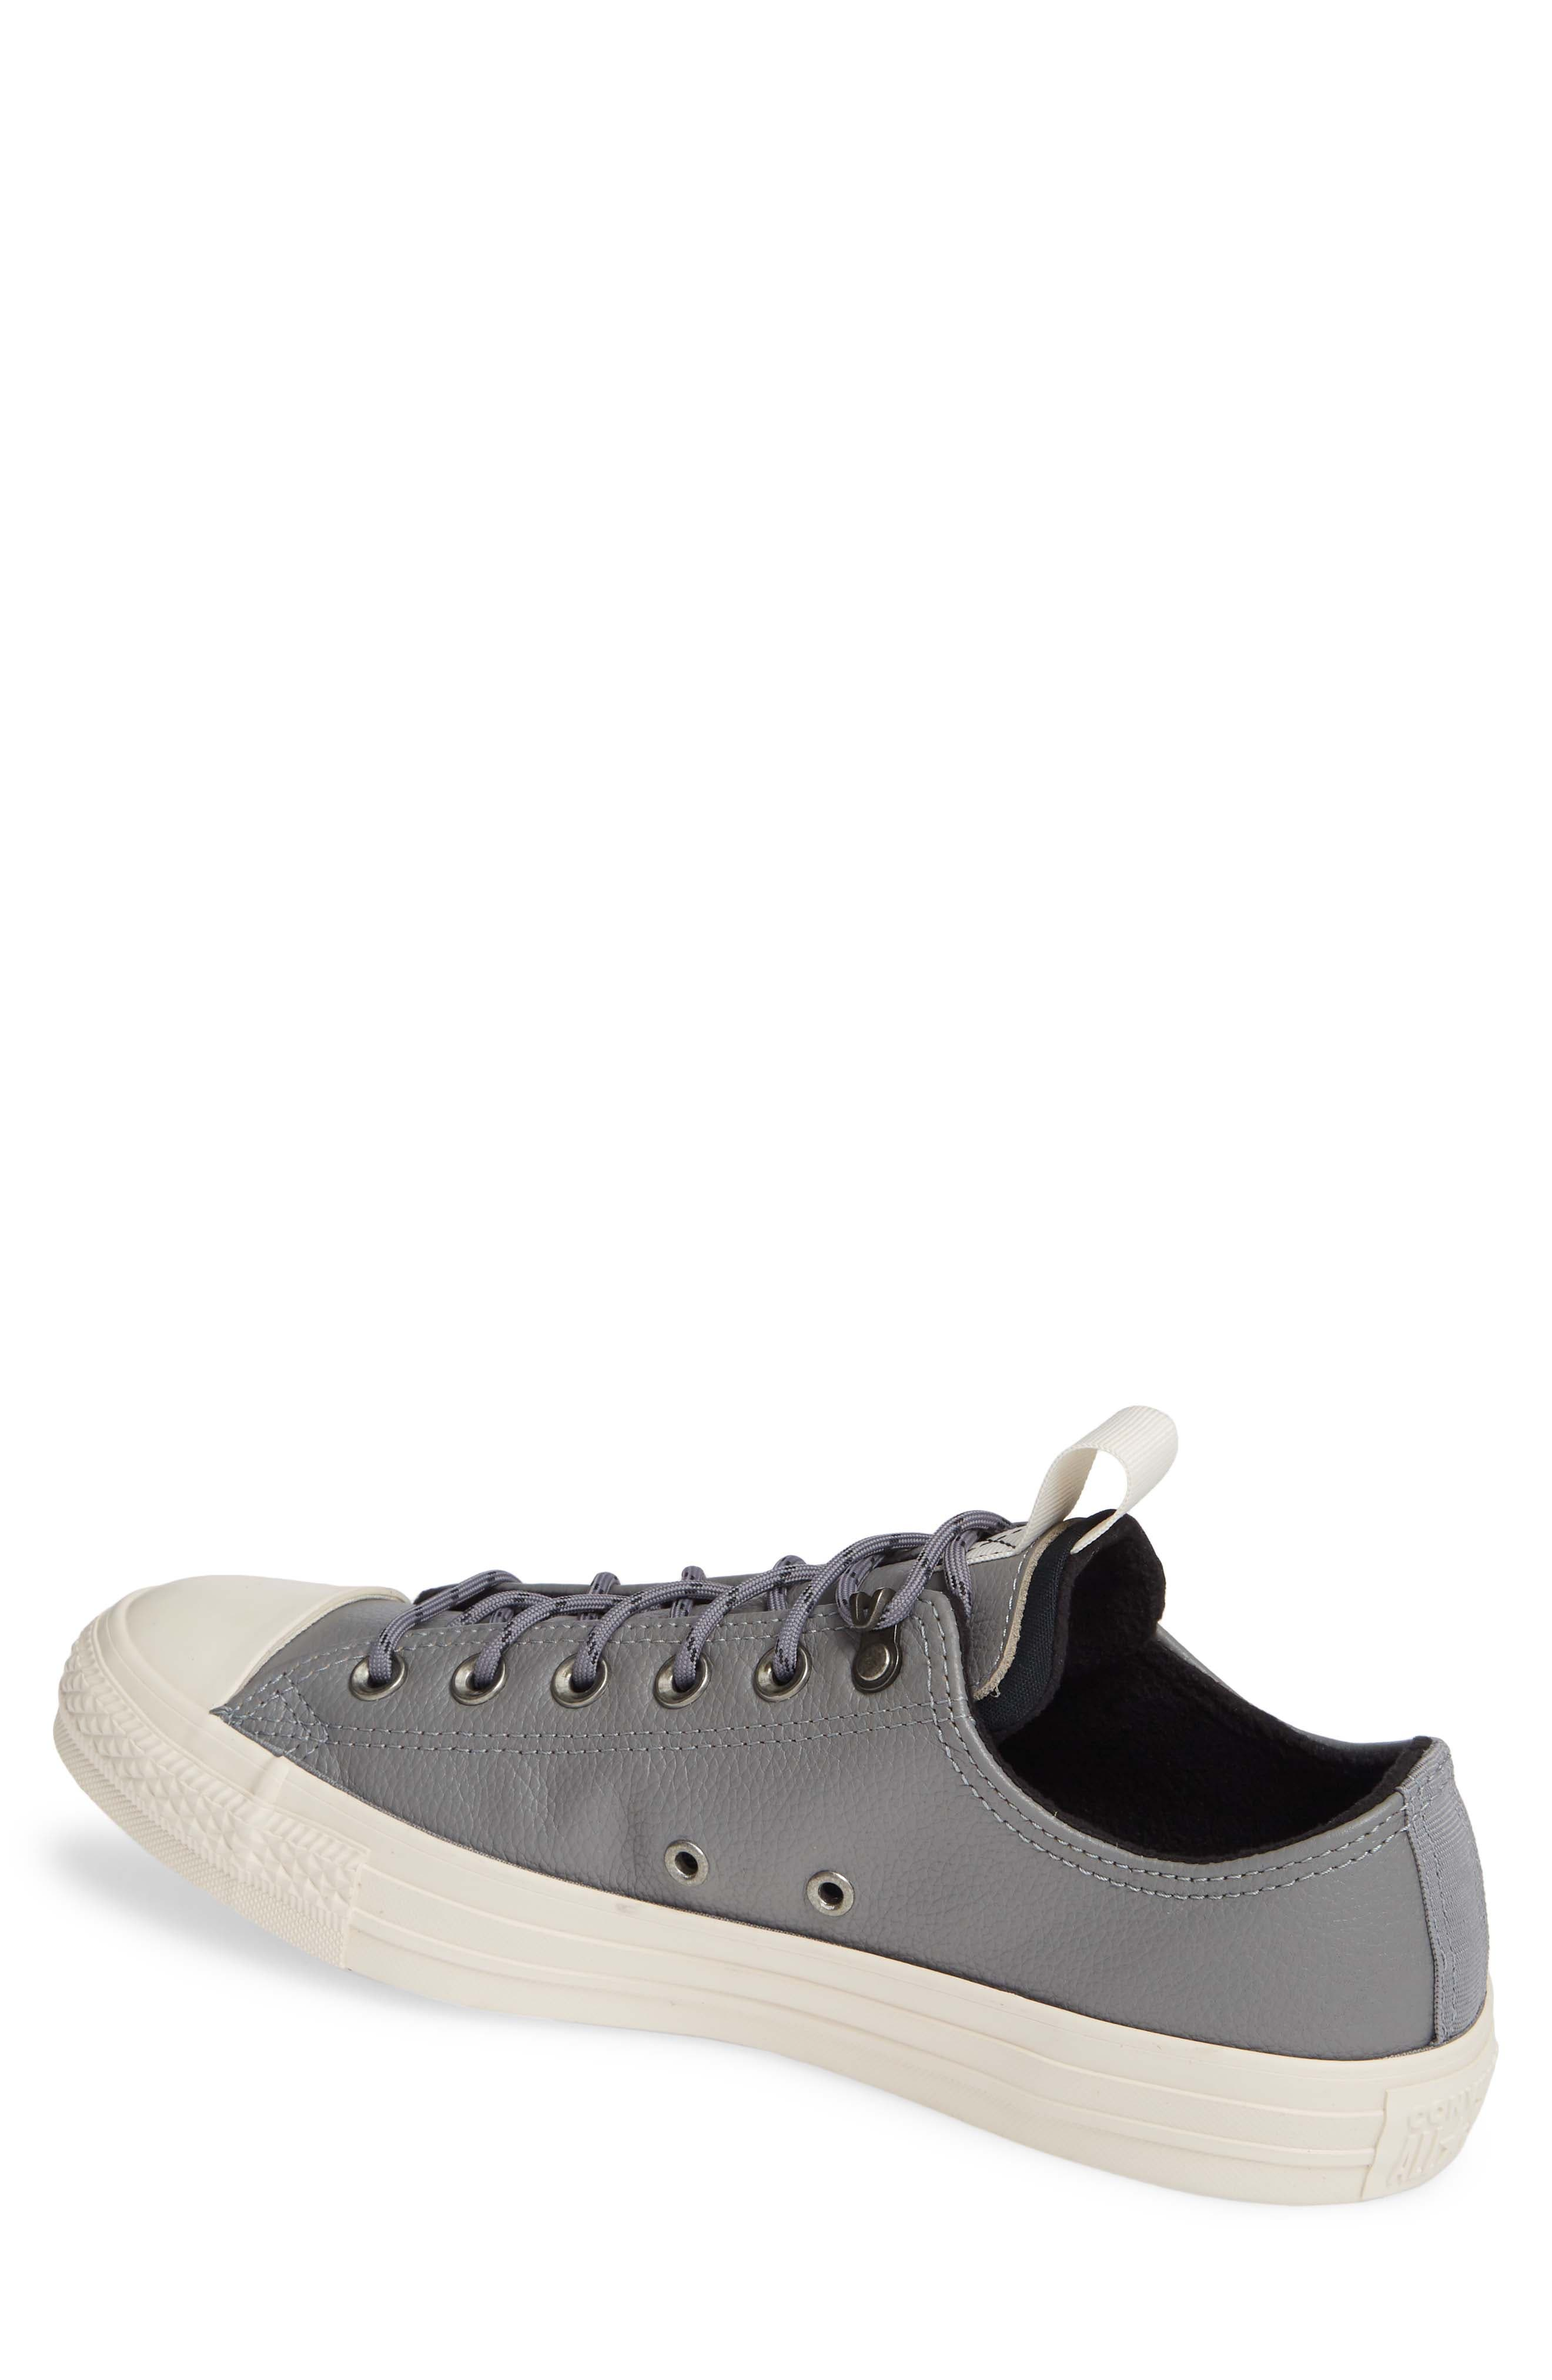 Chuck Taylor<sup>®</sup> All Star<sup>®</sup> Desert Storm Ox Sneaker,                             Alternate thumbnail 2, color,                             WHITE/ LIGHT FAWN/ EGRET